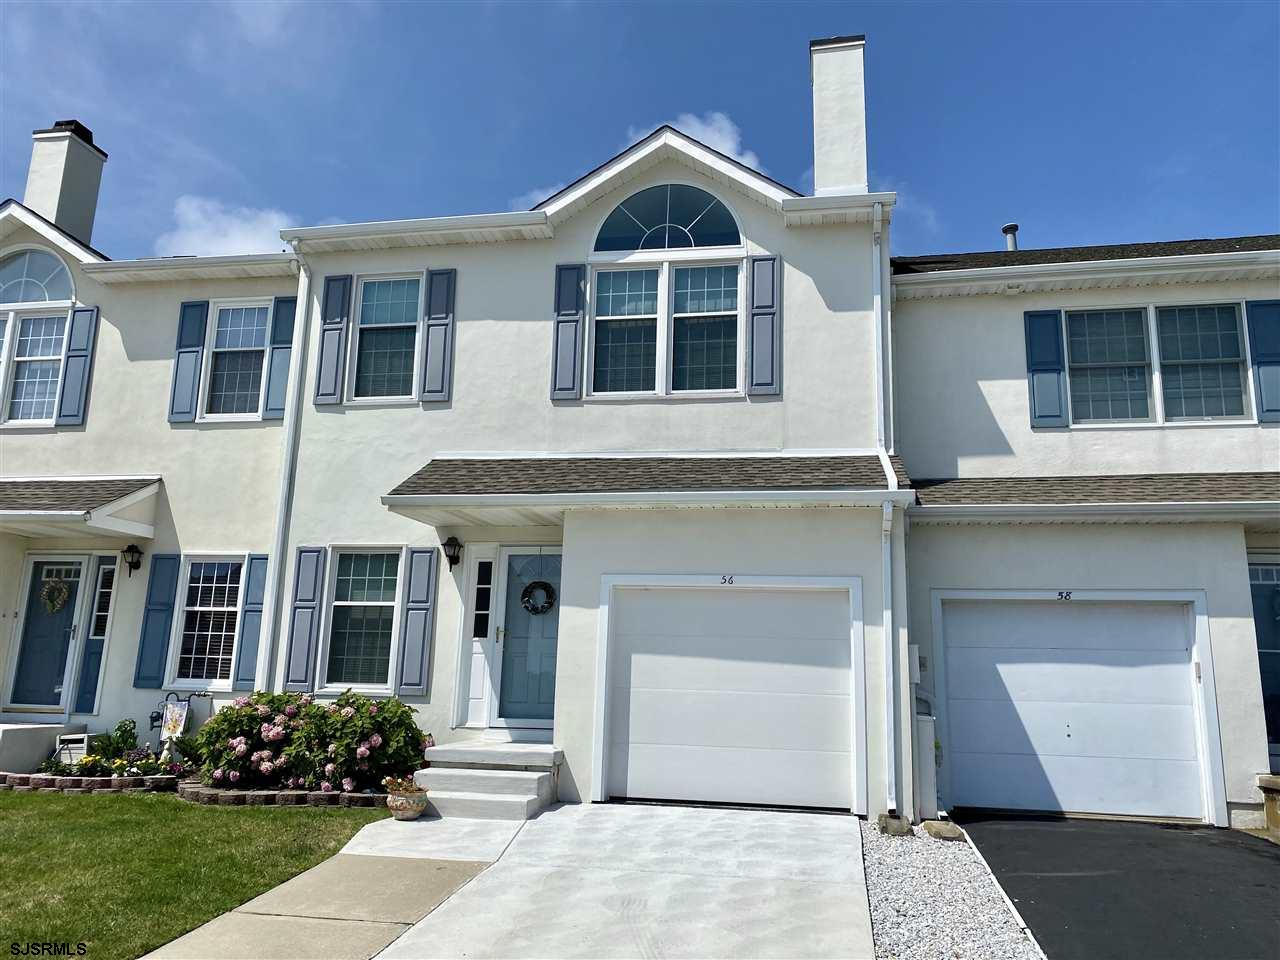 Located on the South End of Brigantine Island in Kings Cove this 3 story townhome has one of the bes